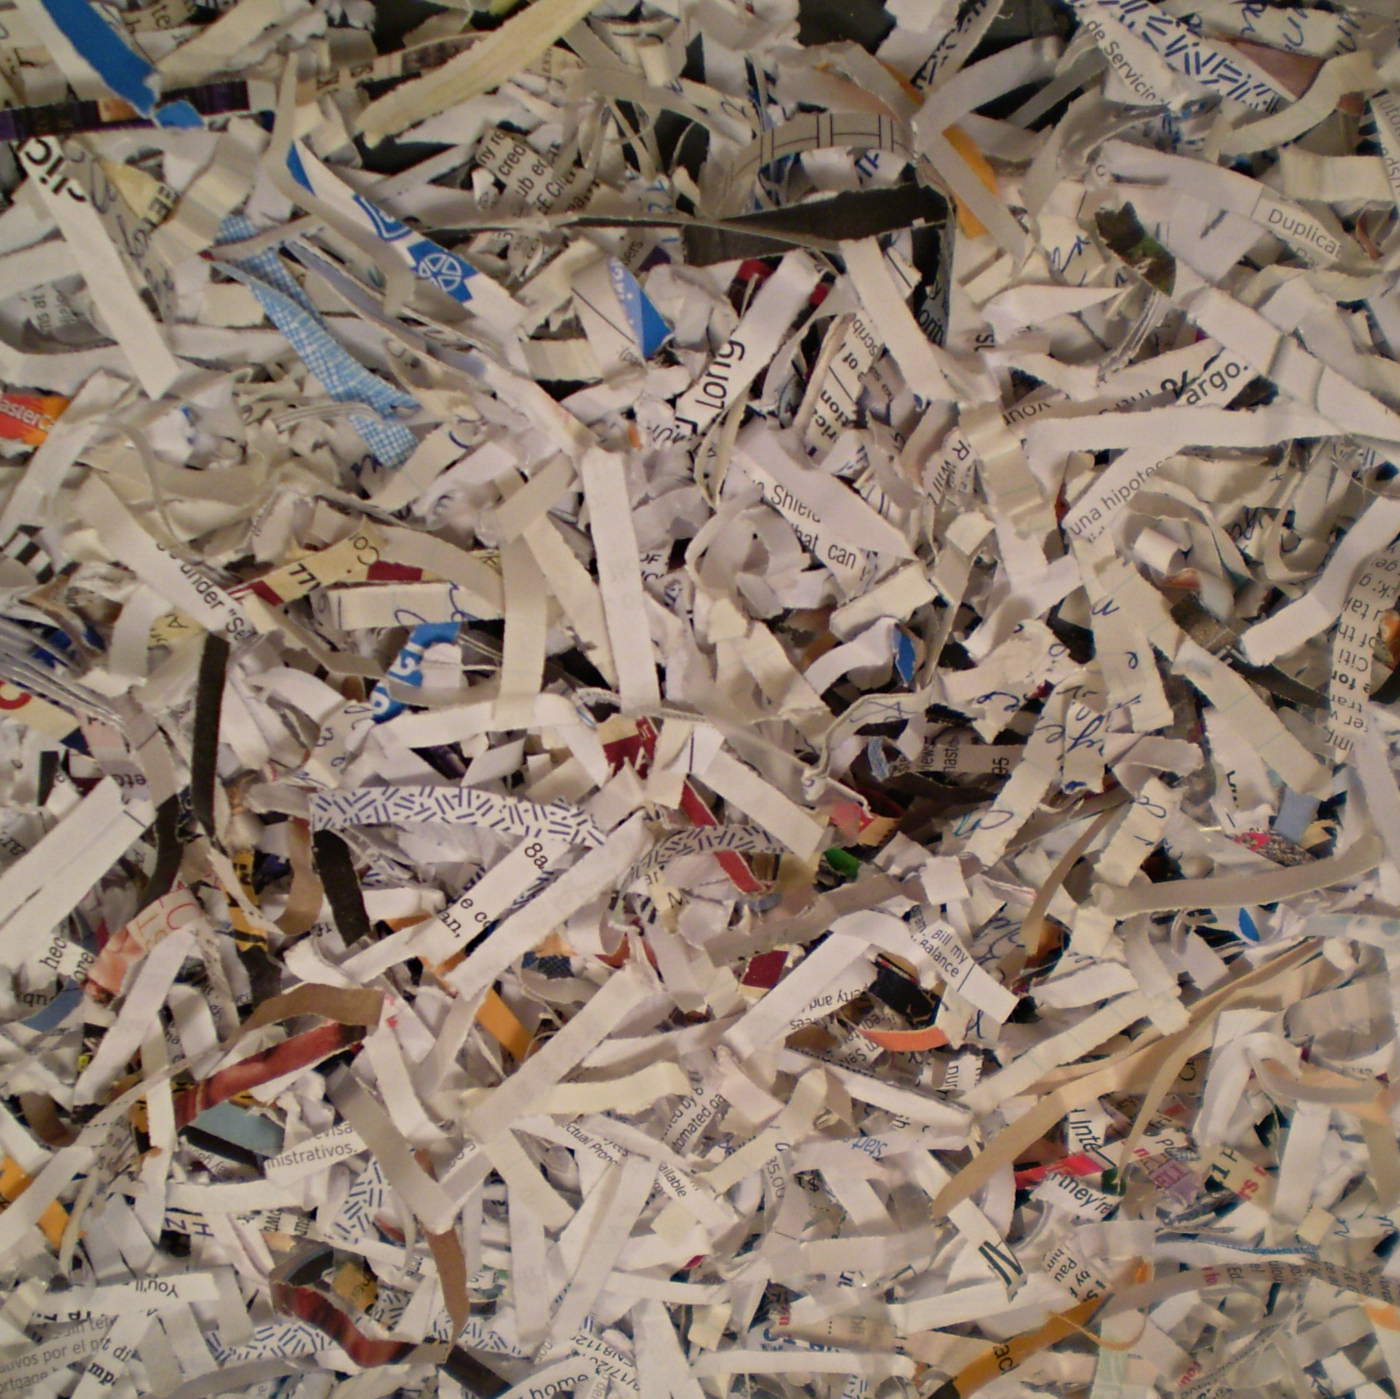 shredding services near me With where to get documents shredded near me